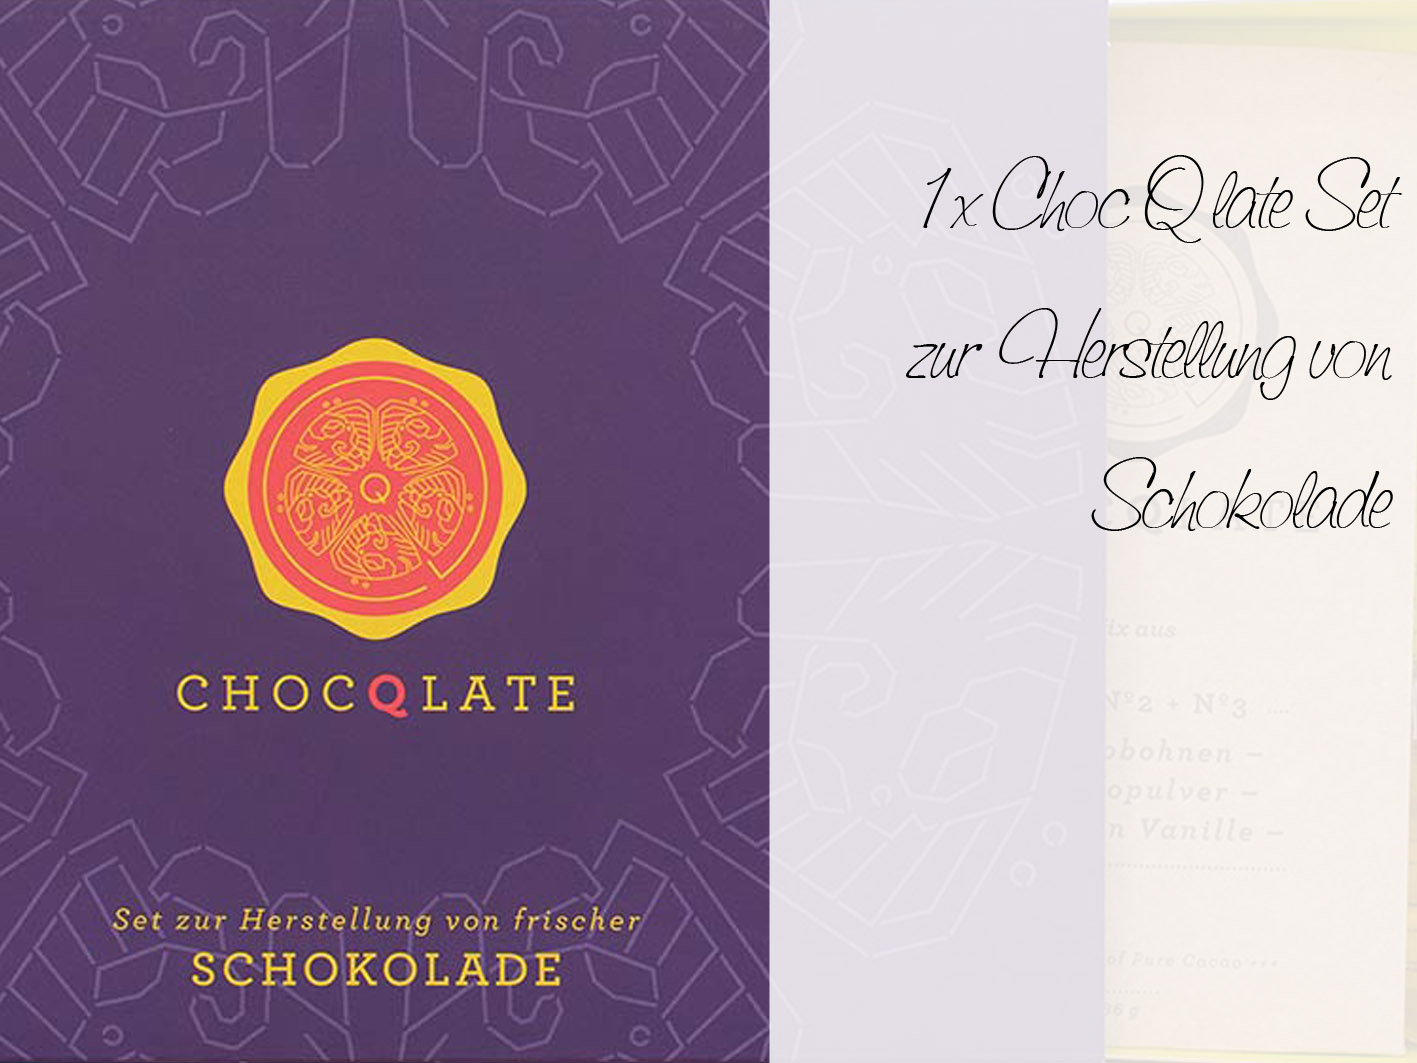 foodlovin-adventskalender-choclate